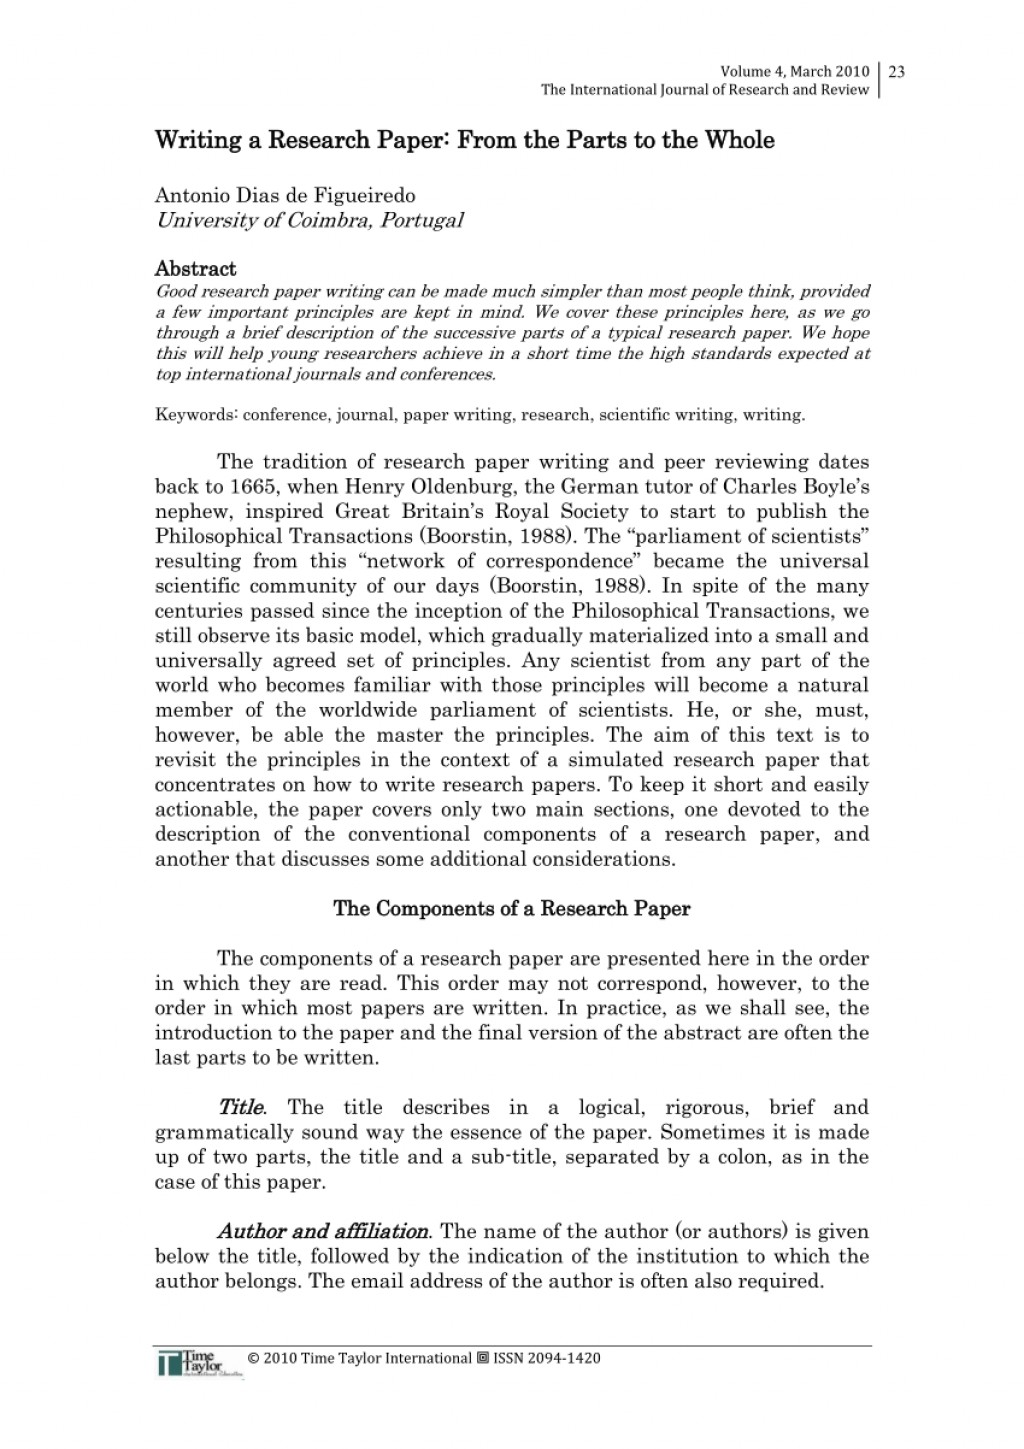 013 What Order Does Research Paper Go In Wonderful Of A Reviews Making Large